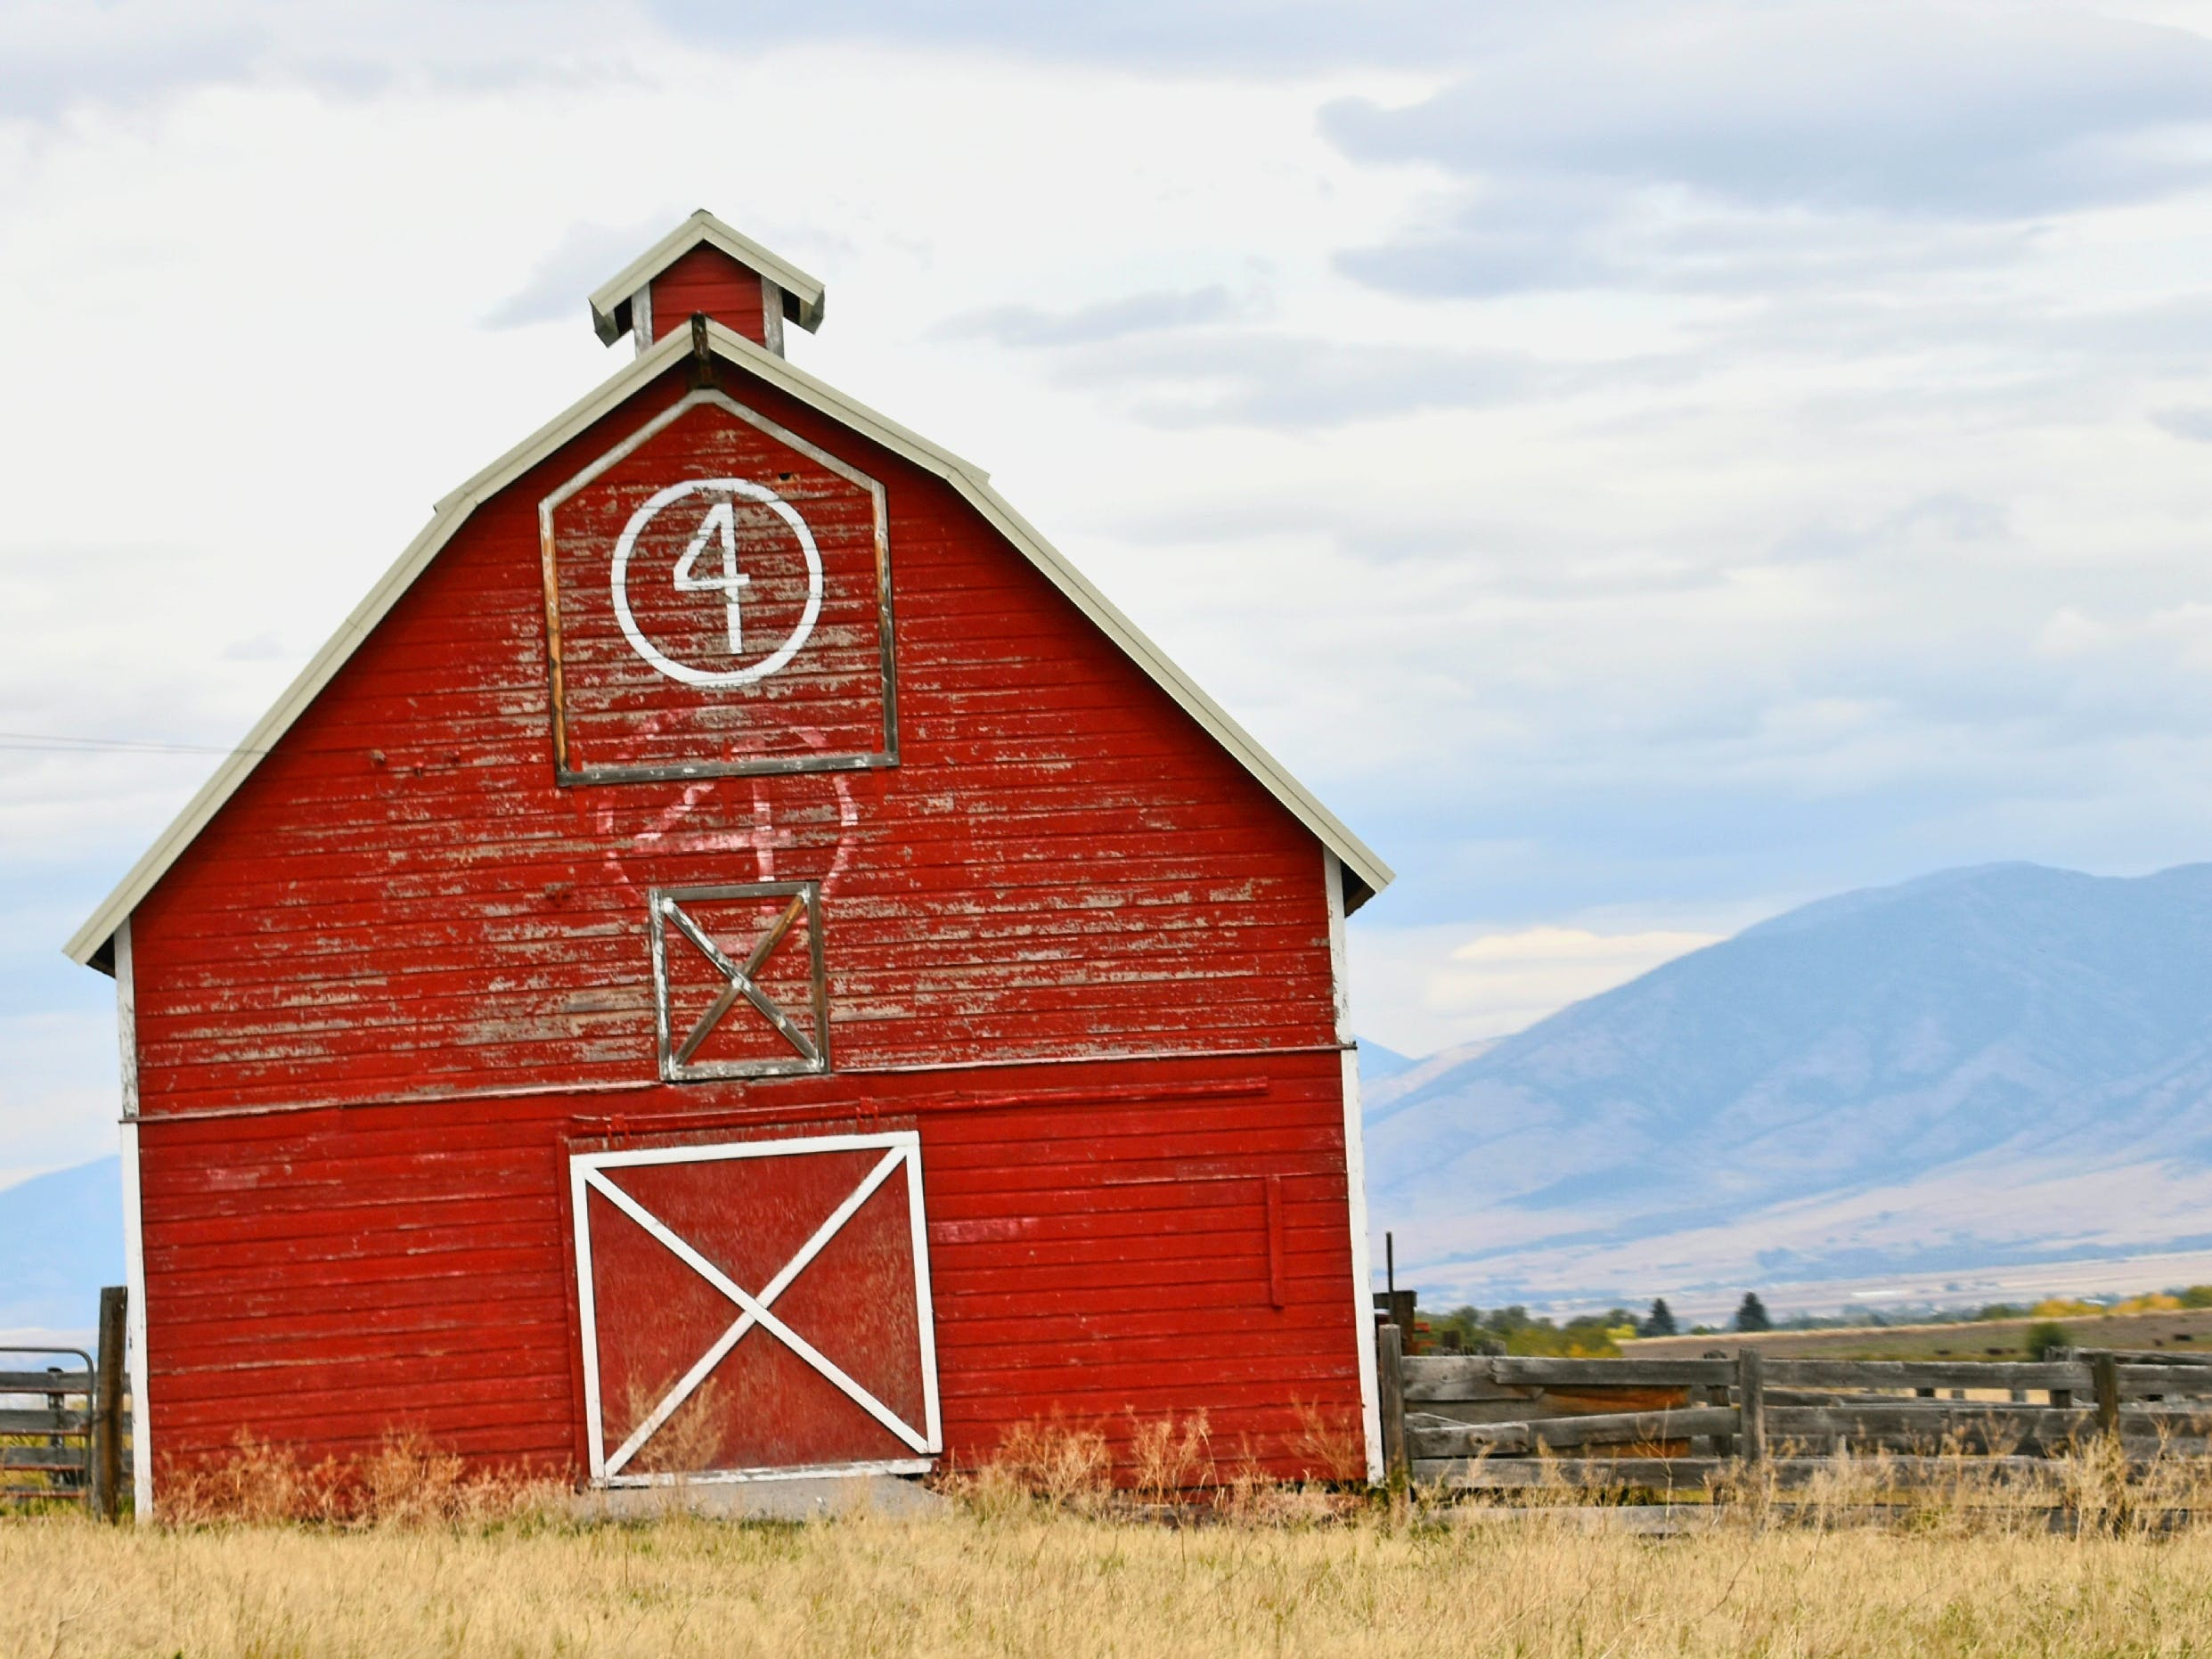 Free stock photo of barn, country, Montana, red